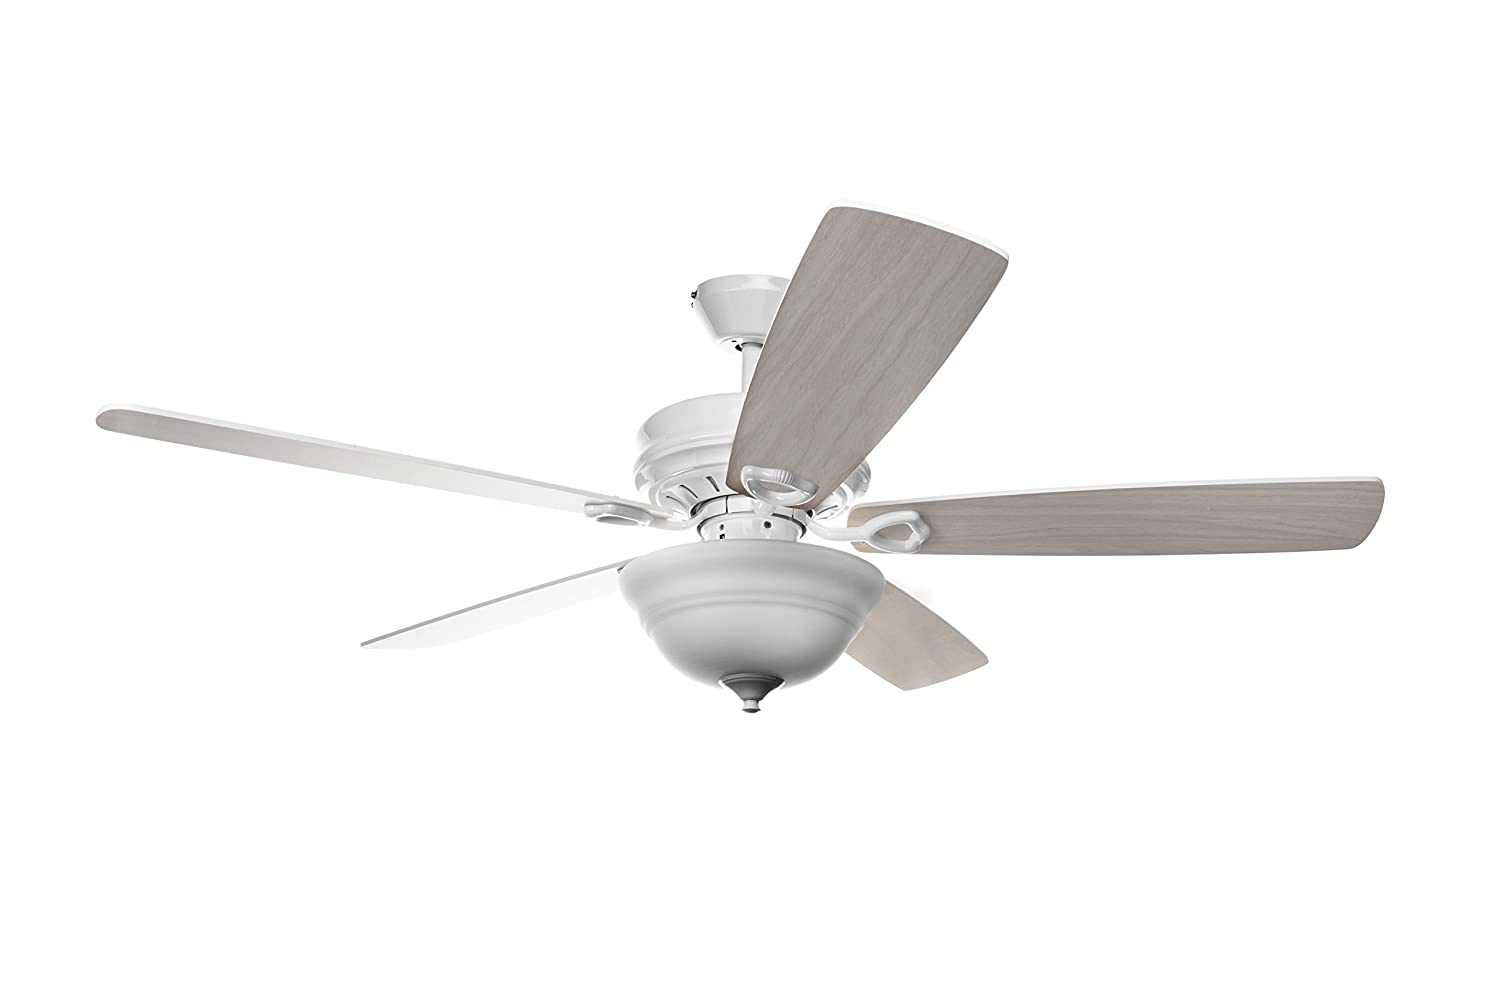 Hyperikon 52 Inch Ceiling Fan With Remote Control White Ceiling Fan